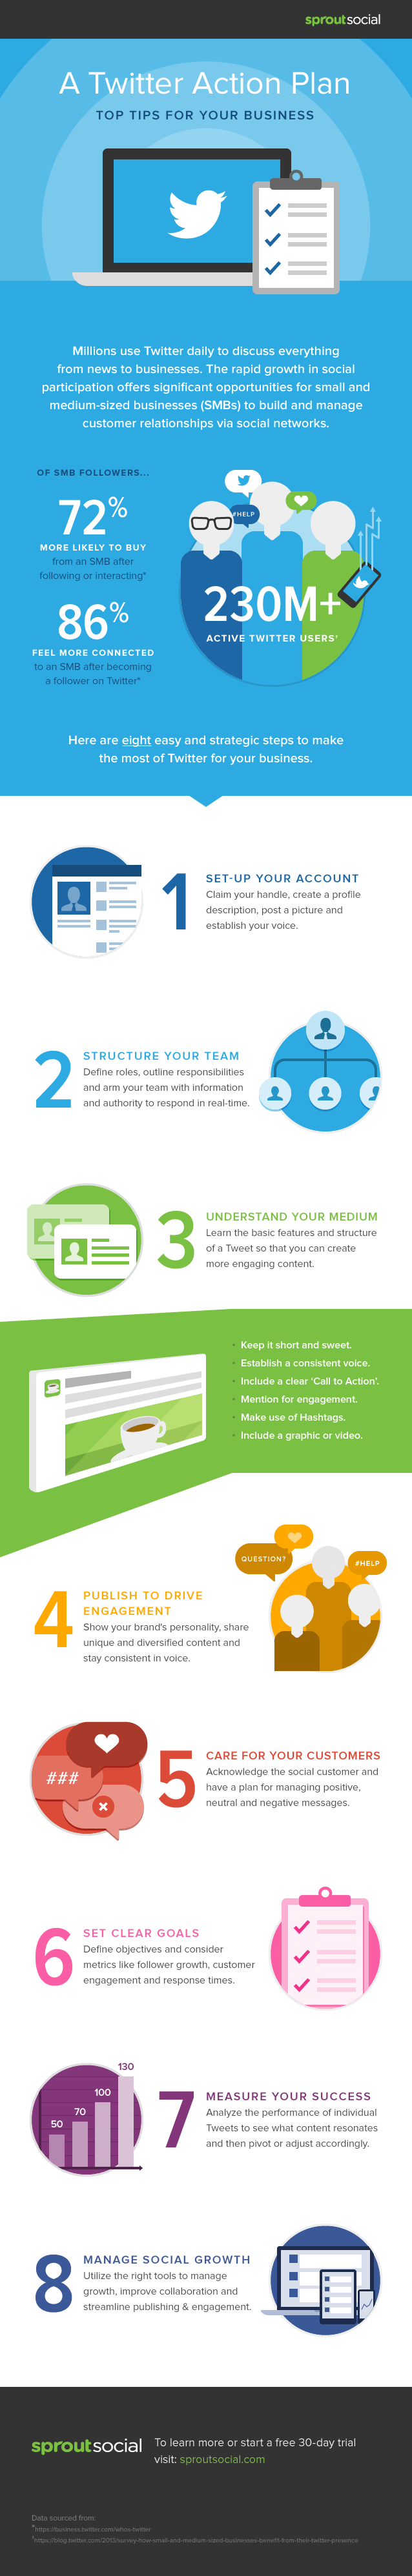 wersm_twitter_action_plan_infographic